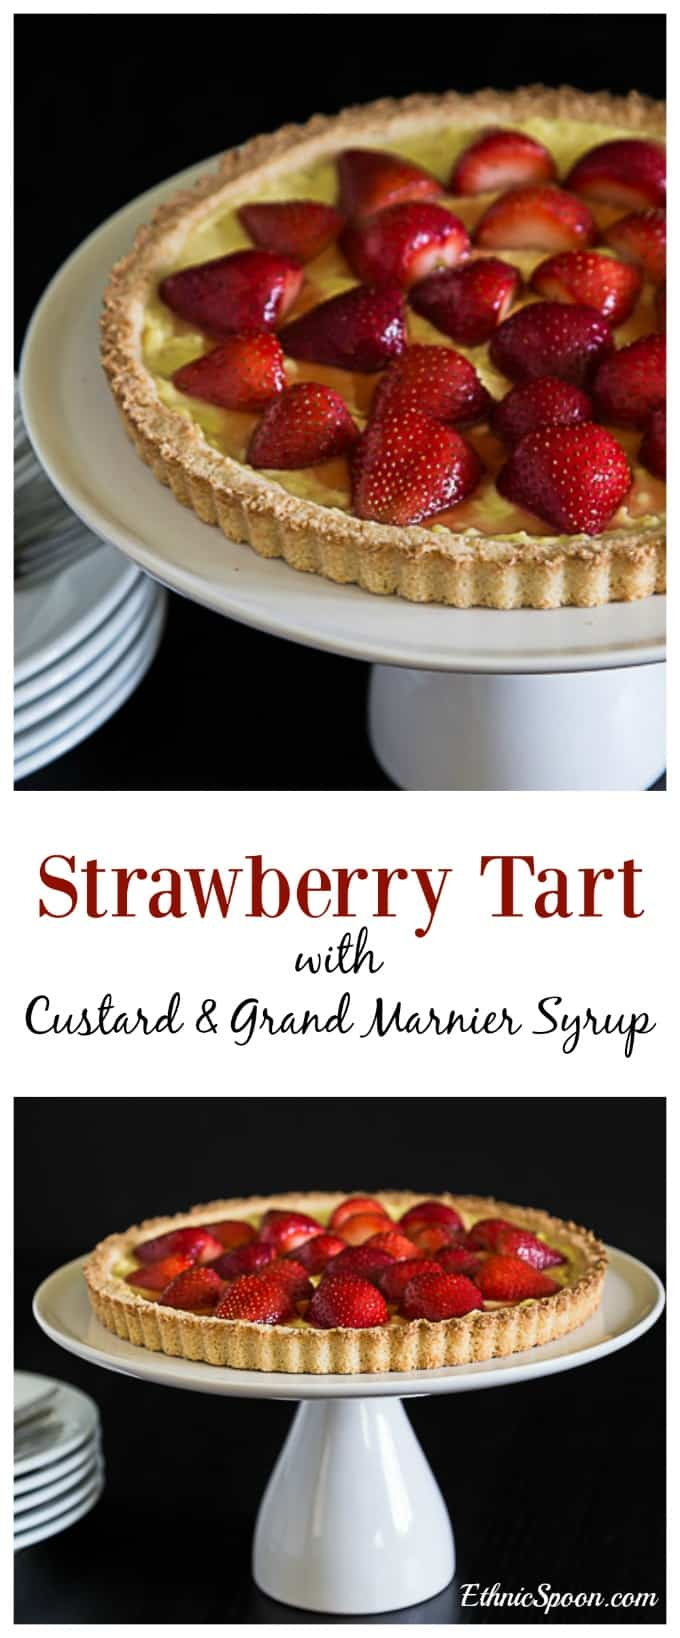 European style strawberry tart with a shortbread crust, creamy custard and Grand Marnier syrup. | ethnicspoon.com